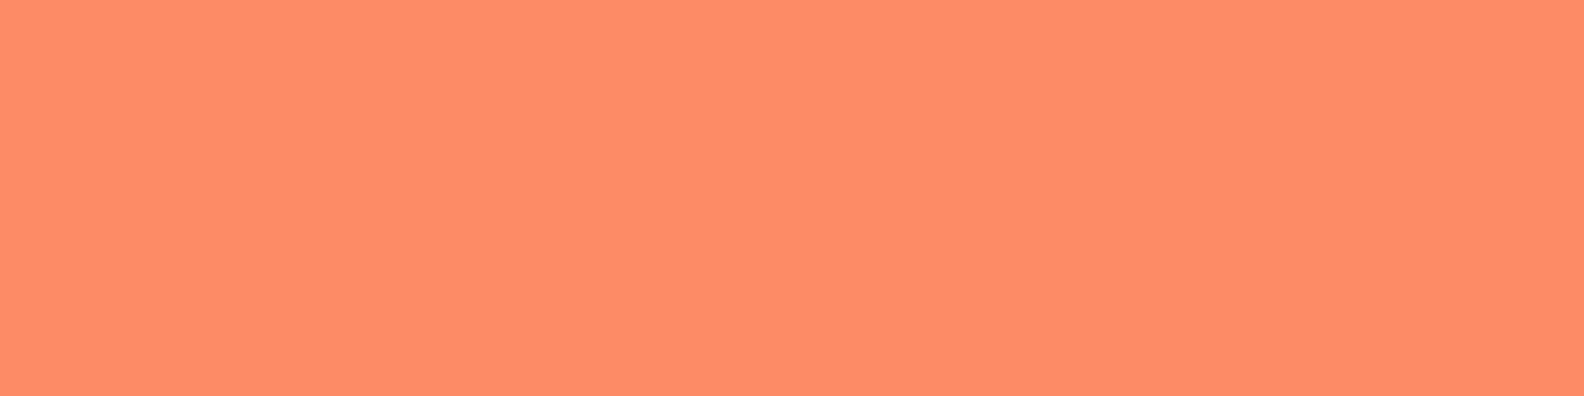 1584x396 Salmon Solid Color Background